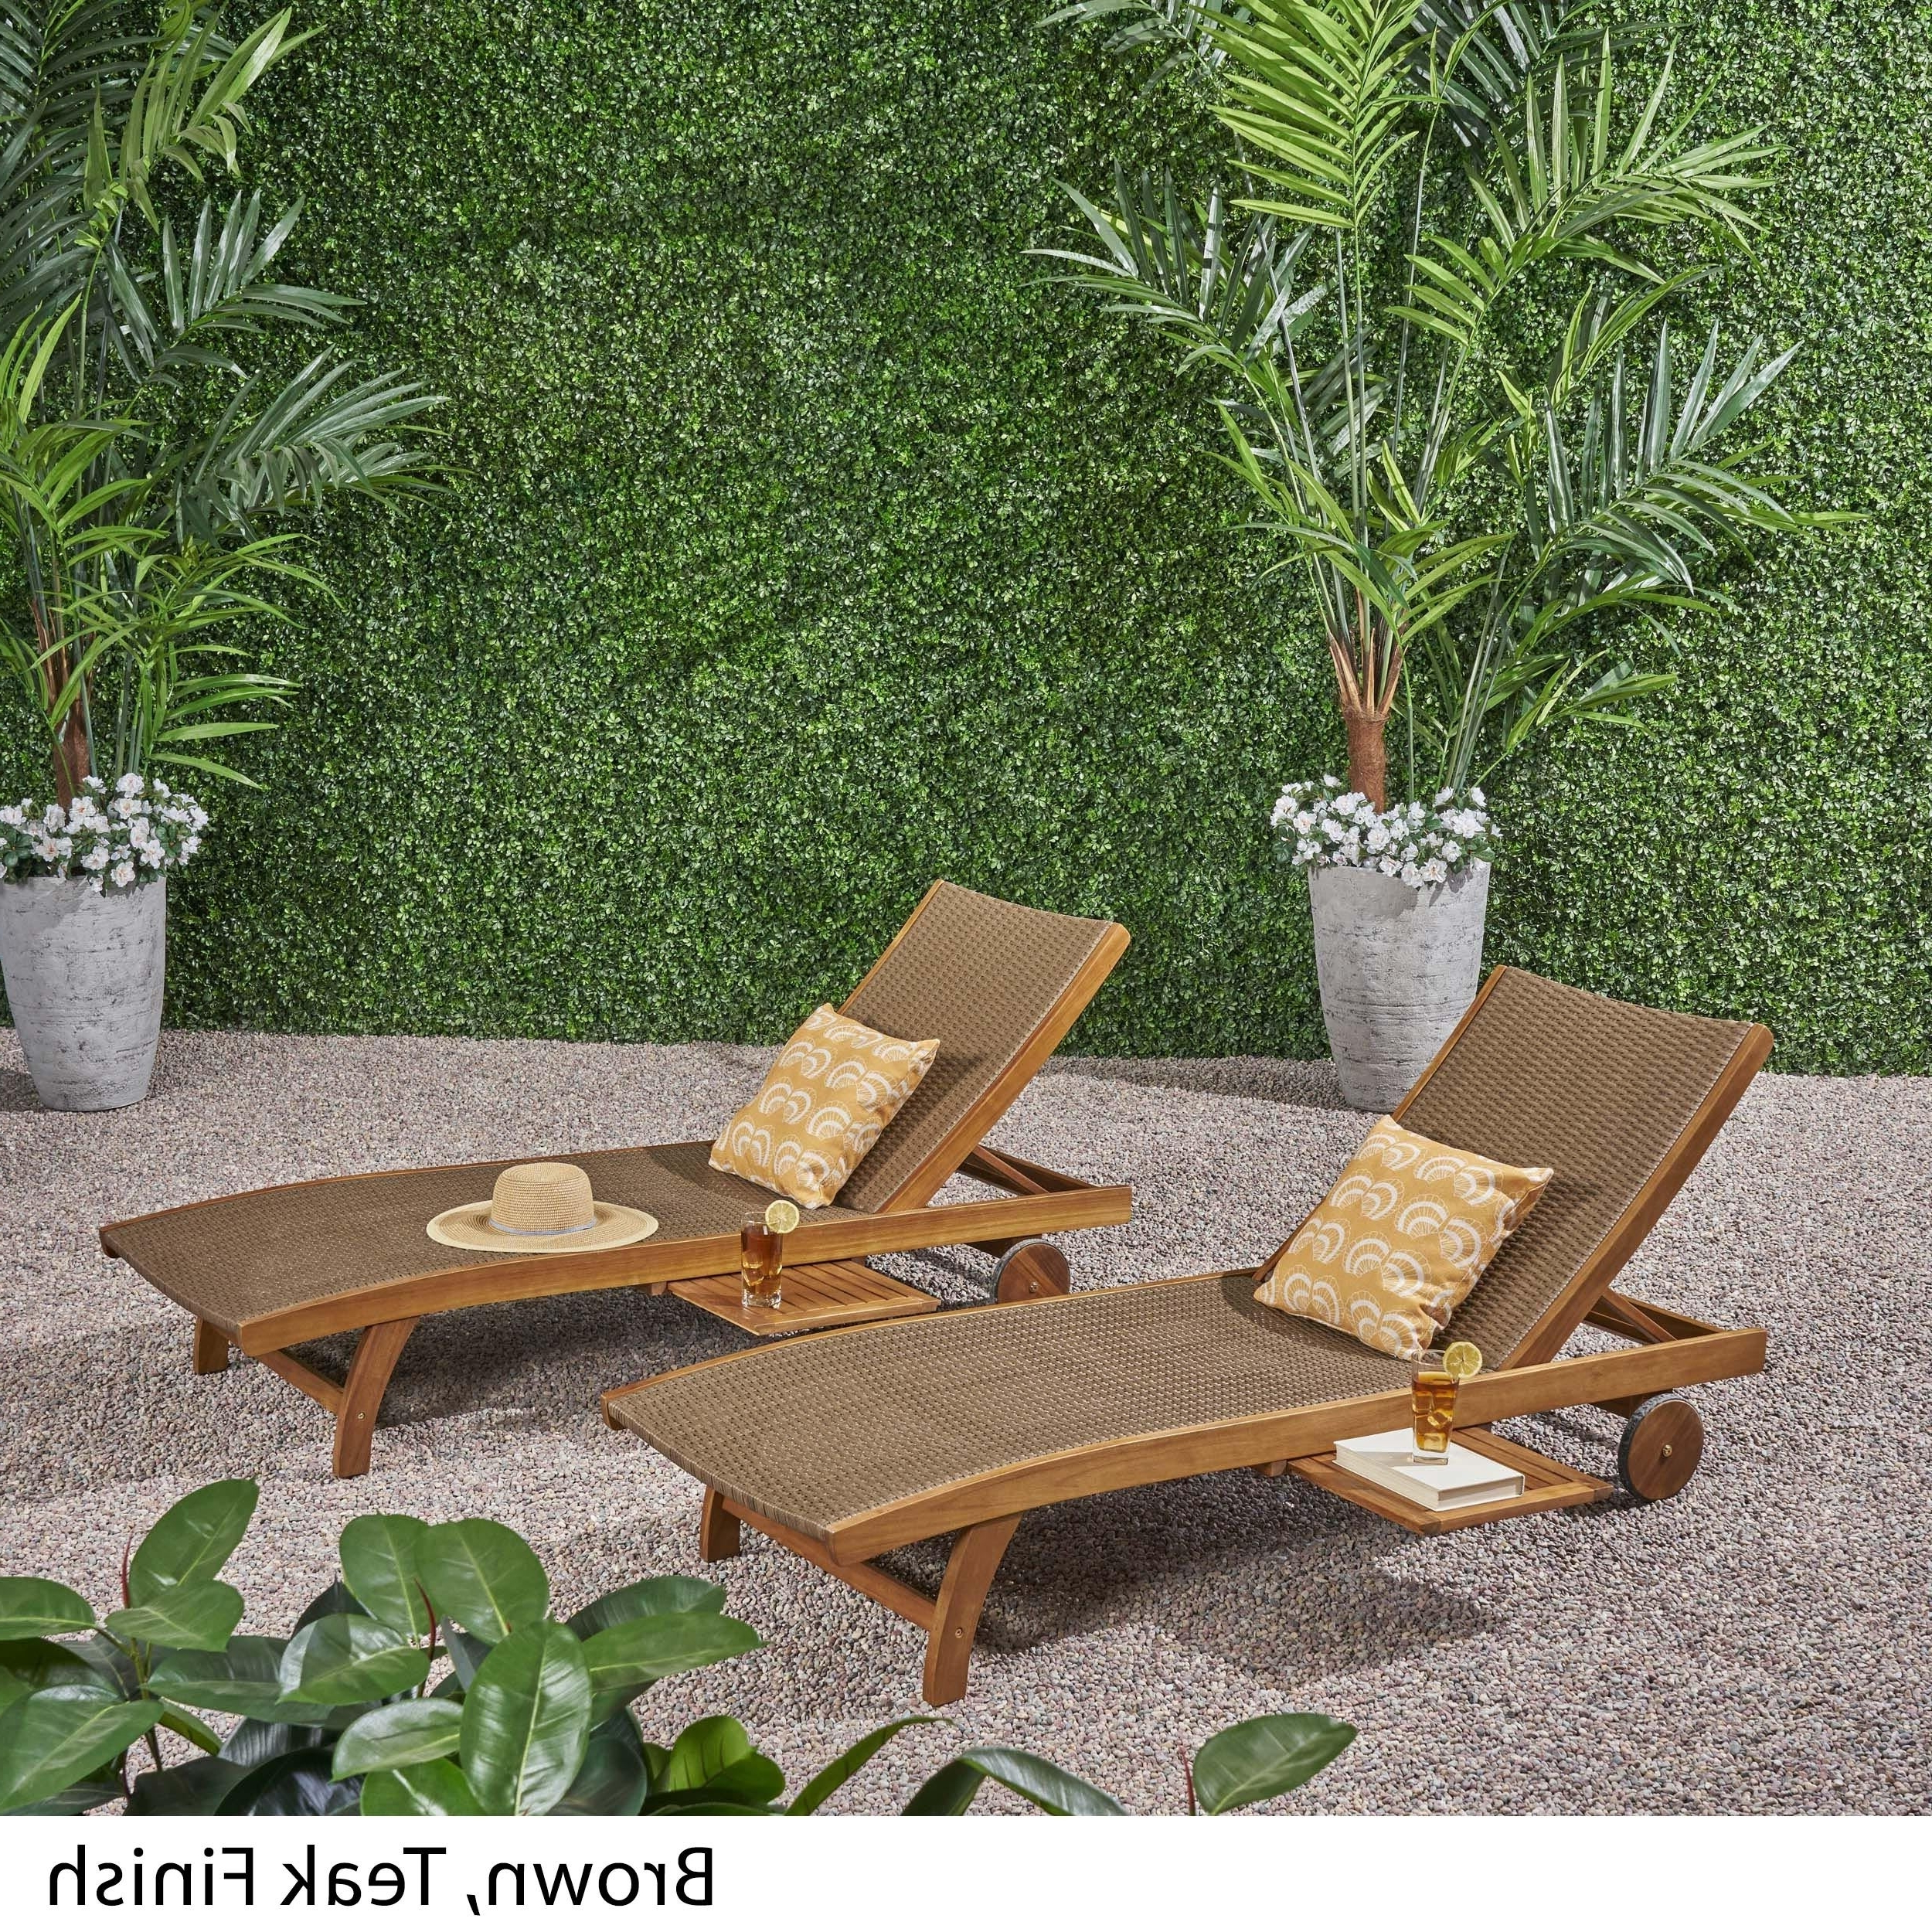 Banzai Outdoor Wicker And Wood Chaise Lounge With Pull Out Tray(Set Of 2) Christopher Knight Home Within Most Current Outdoor Rustic Acacia Wood Chaise Lounges With Wicker Seats (View 2 of 25)